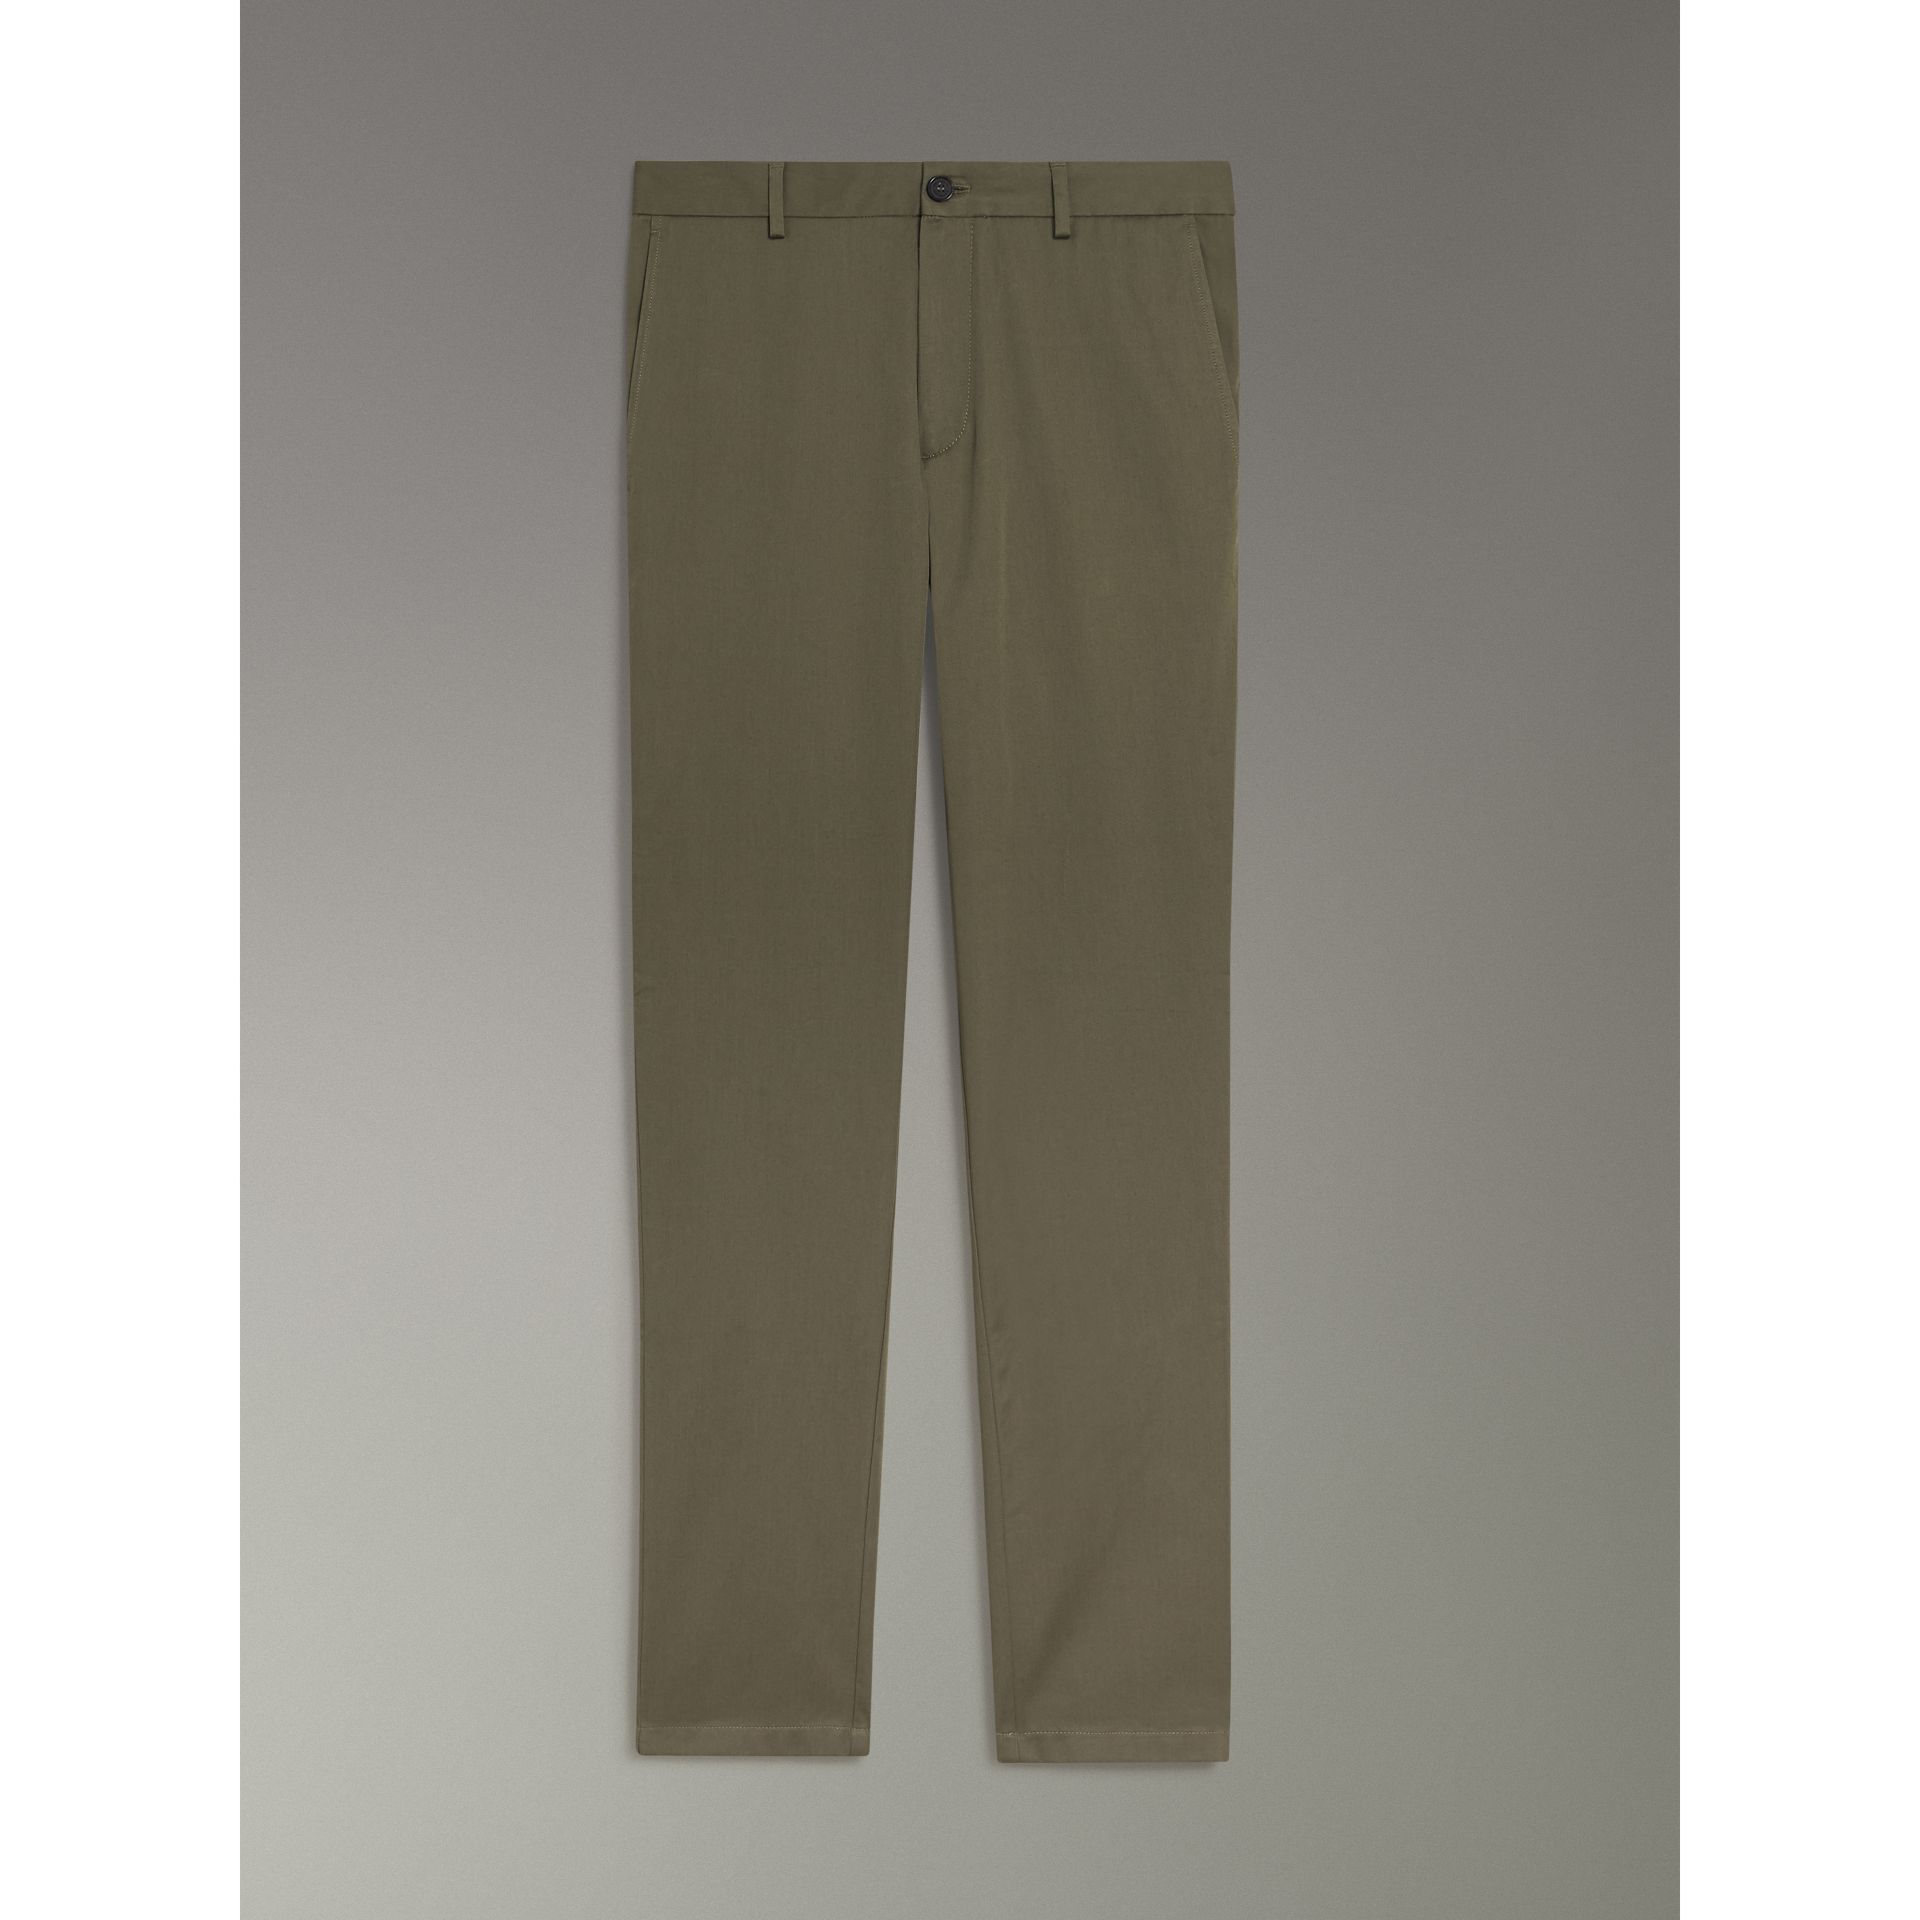 Slim Fit Cotton Chinos in Military Green - Men | Burberry Canada - gallery image 3